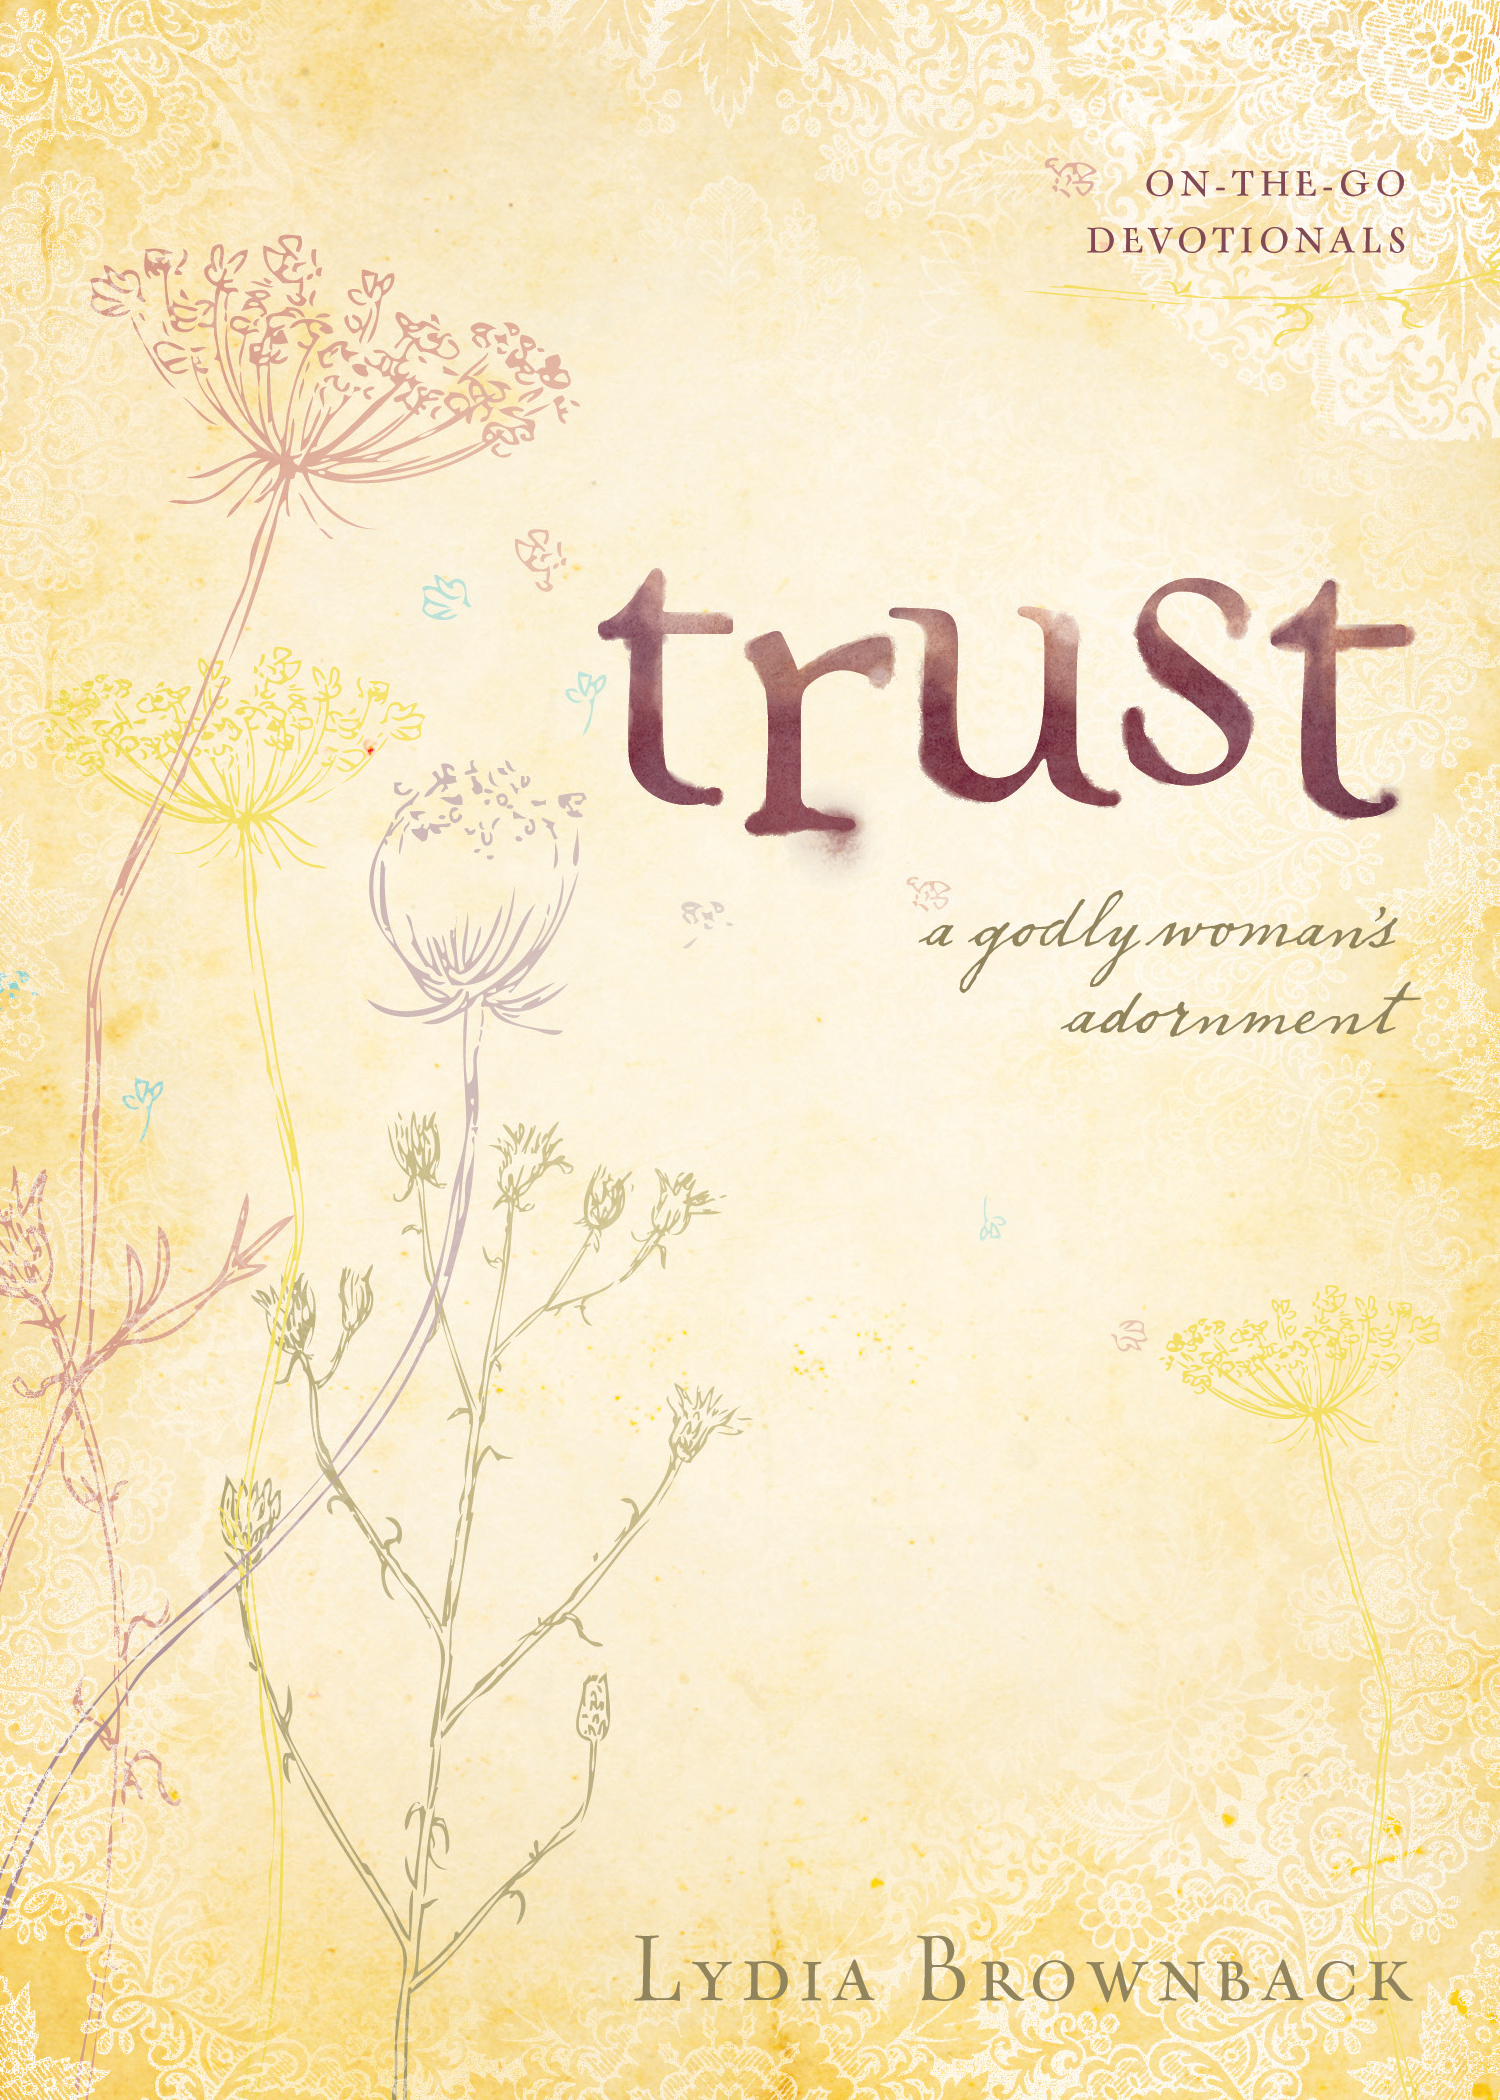 Trust A Godly Woman's Adornment